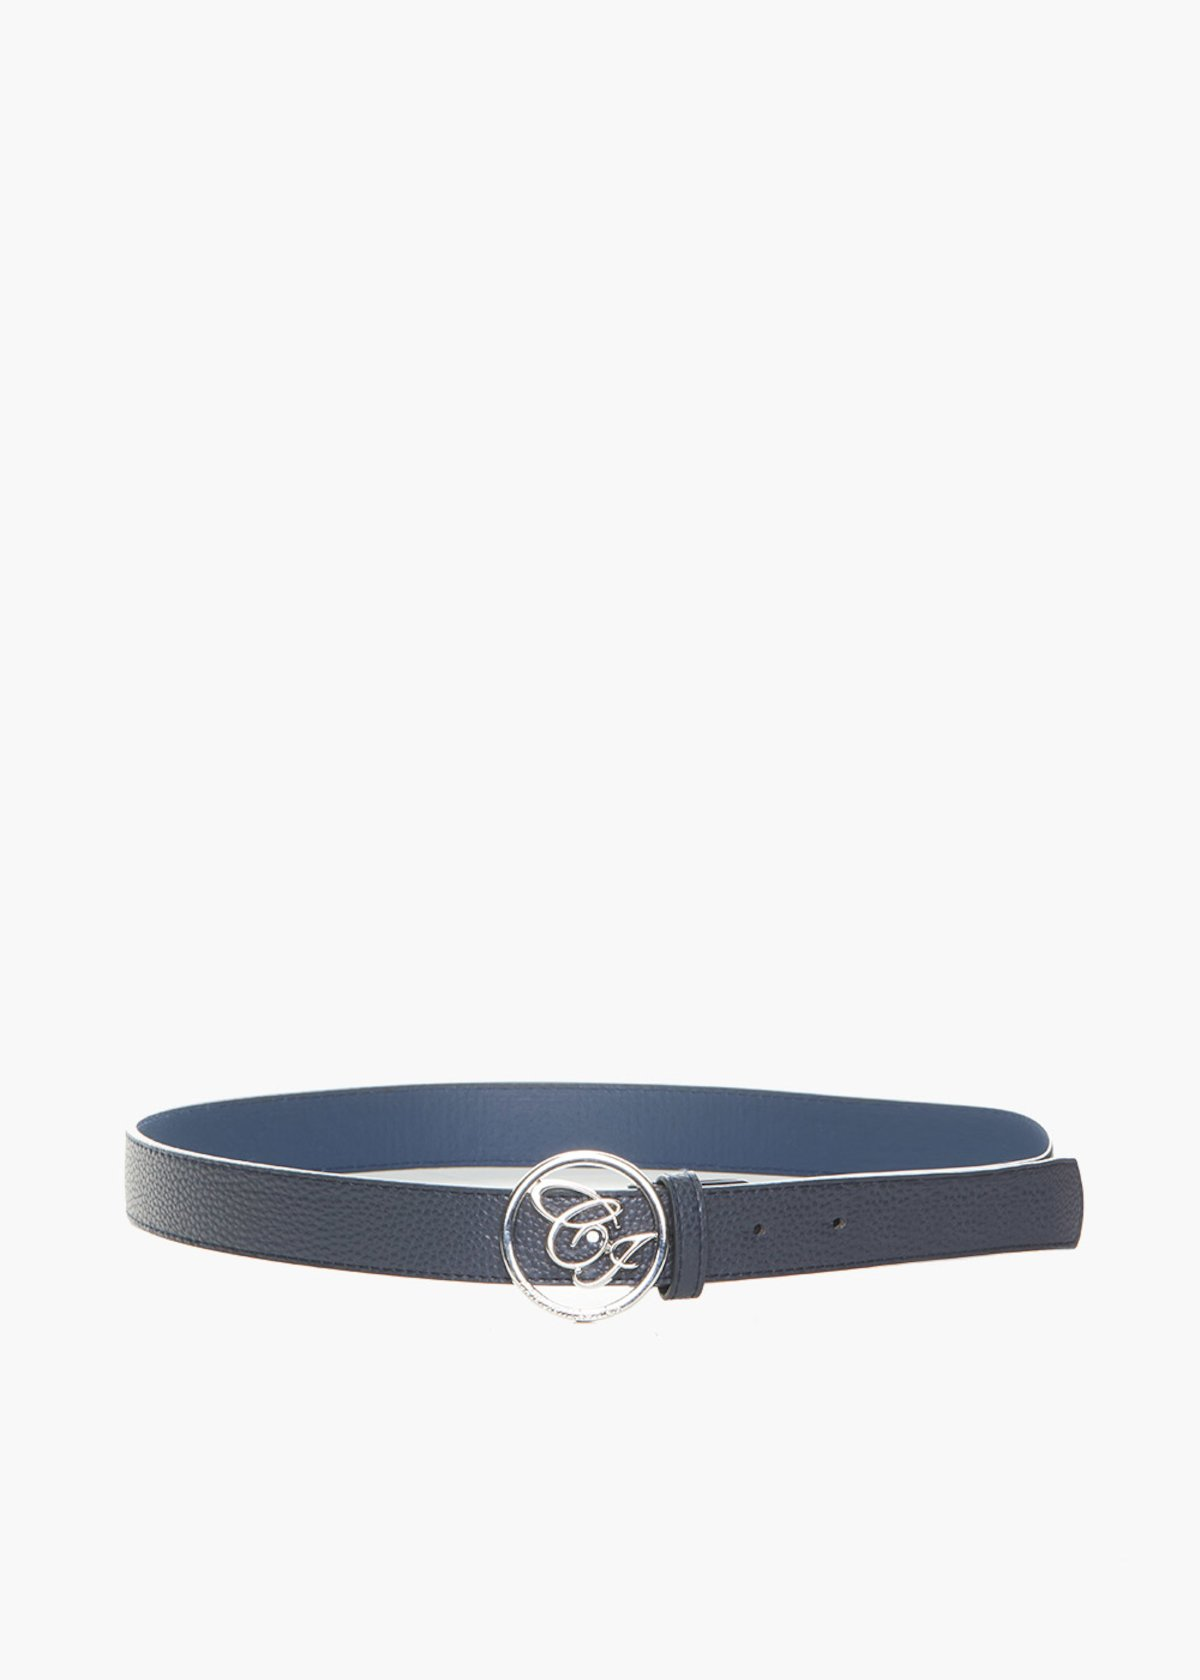 Faux leather Cinty belt deer print and metal logo fastening - Medium Blue - Woman - Category image